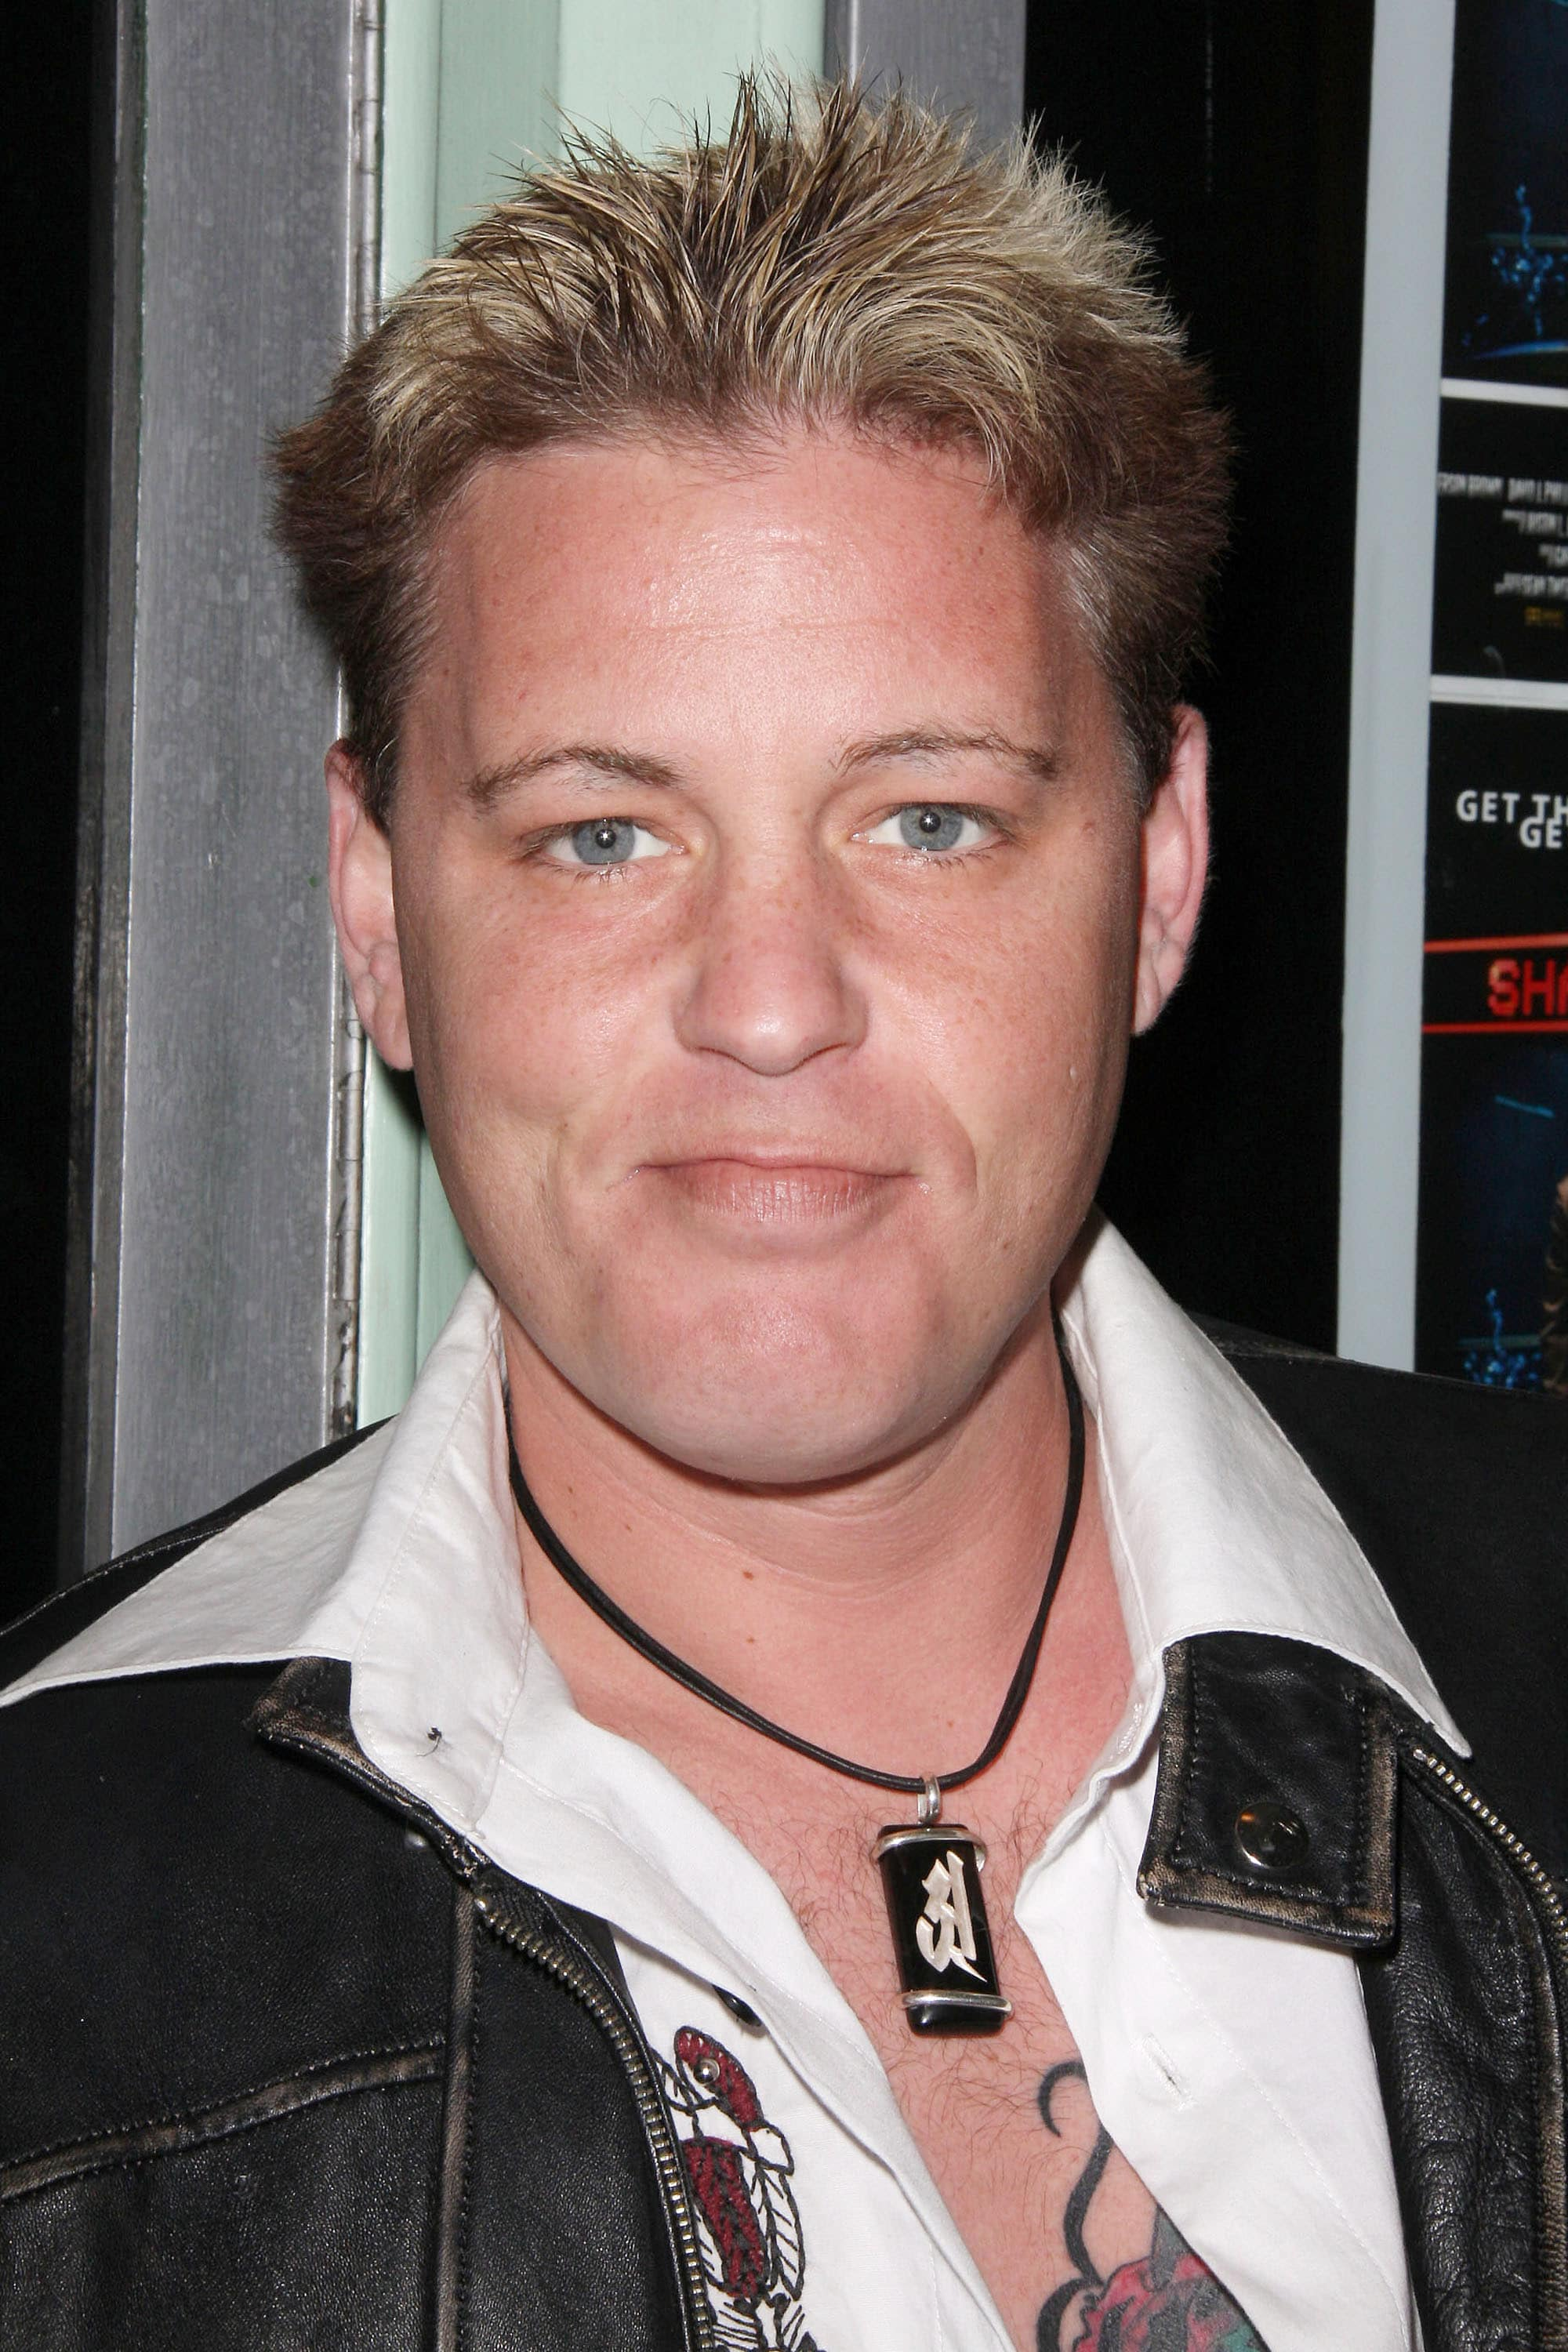 corey haim youtubecorey haim youtube, corey haim fanfiction, corey haim abused sexually, corey haim movies, corey haim natal chart, corey haim 1986, corey haim me myself and i, corey haim 2001, corey haim death, corey haim facebook, corey haim best friend, corey haim and lala sloatman